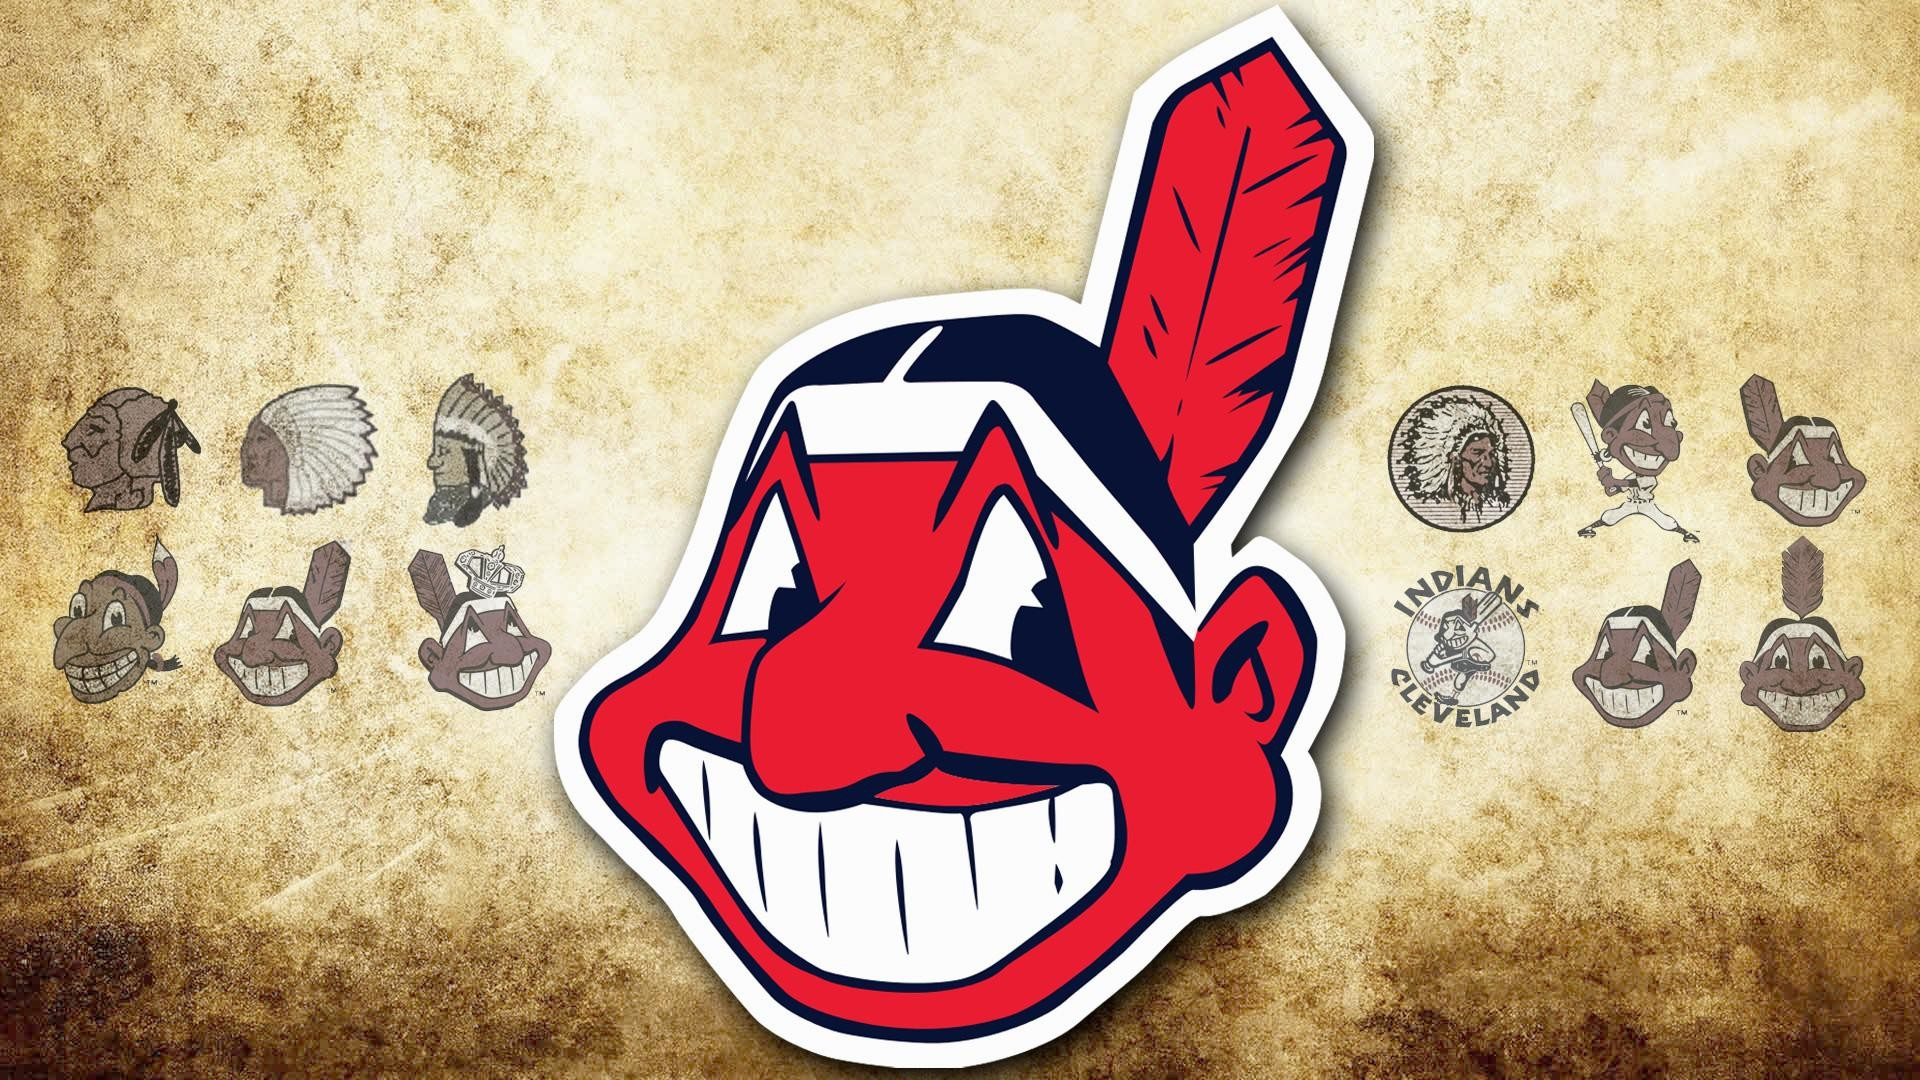 wallpaper.wiki-Free-Cleveland-Indians-Photo-PIC-WPC004389